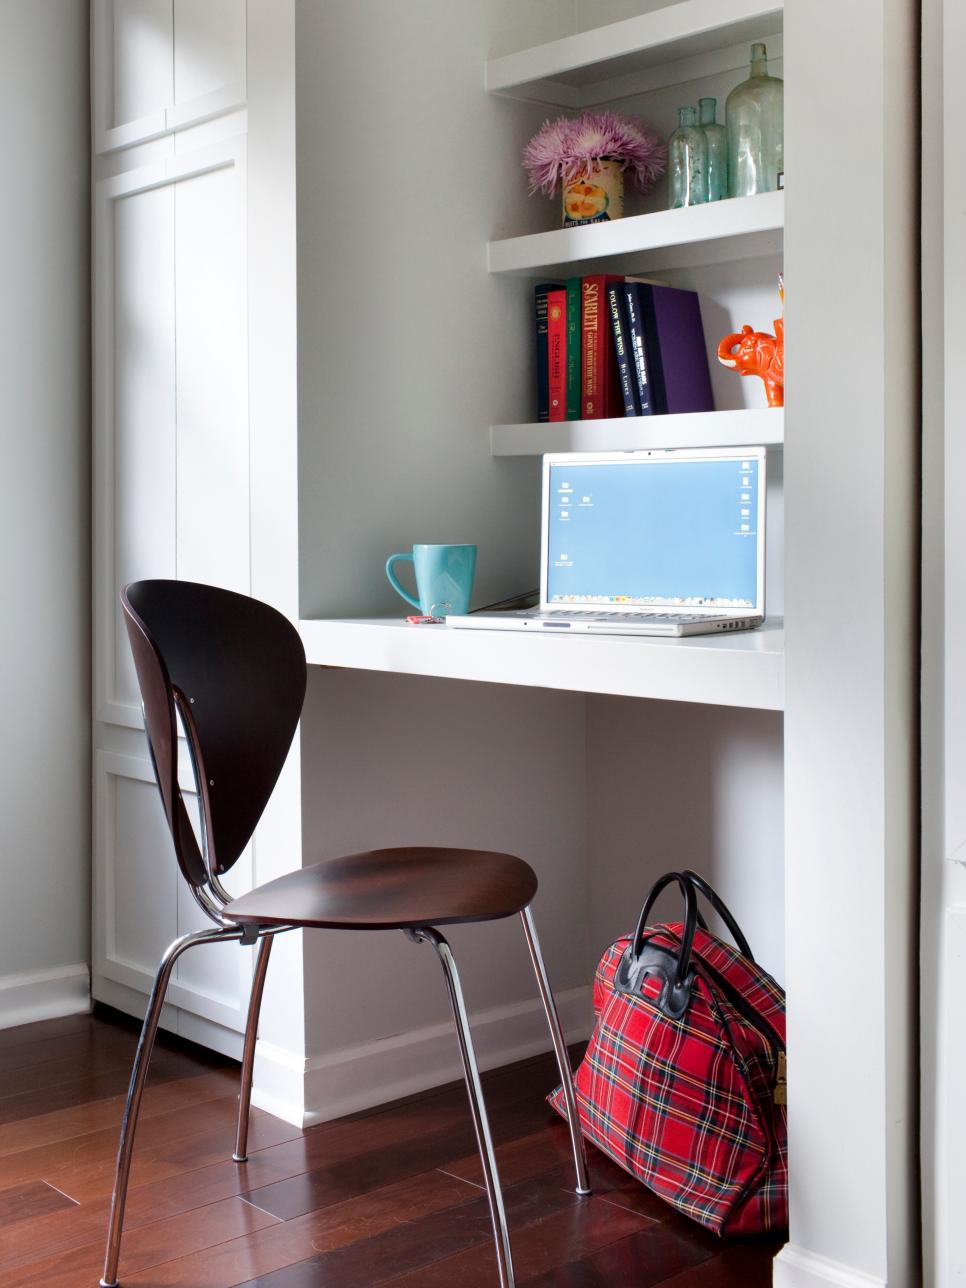 10 smart design ideas for small spaces hgtv